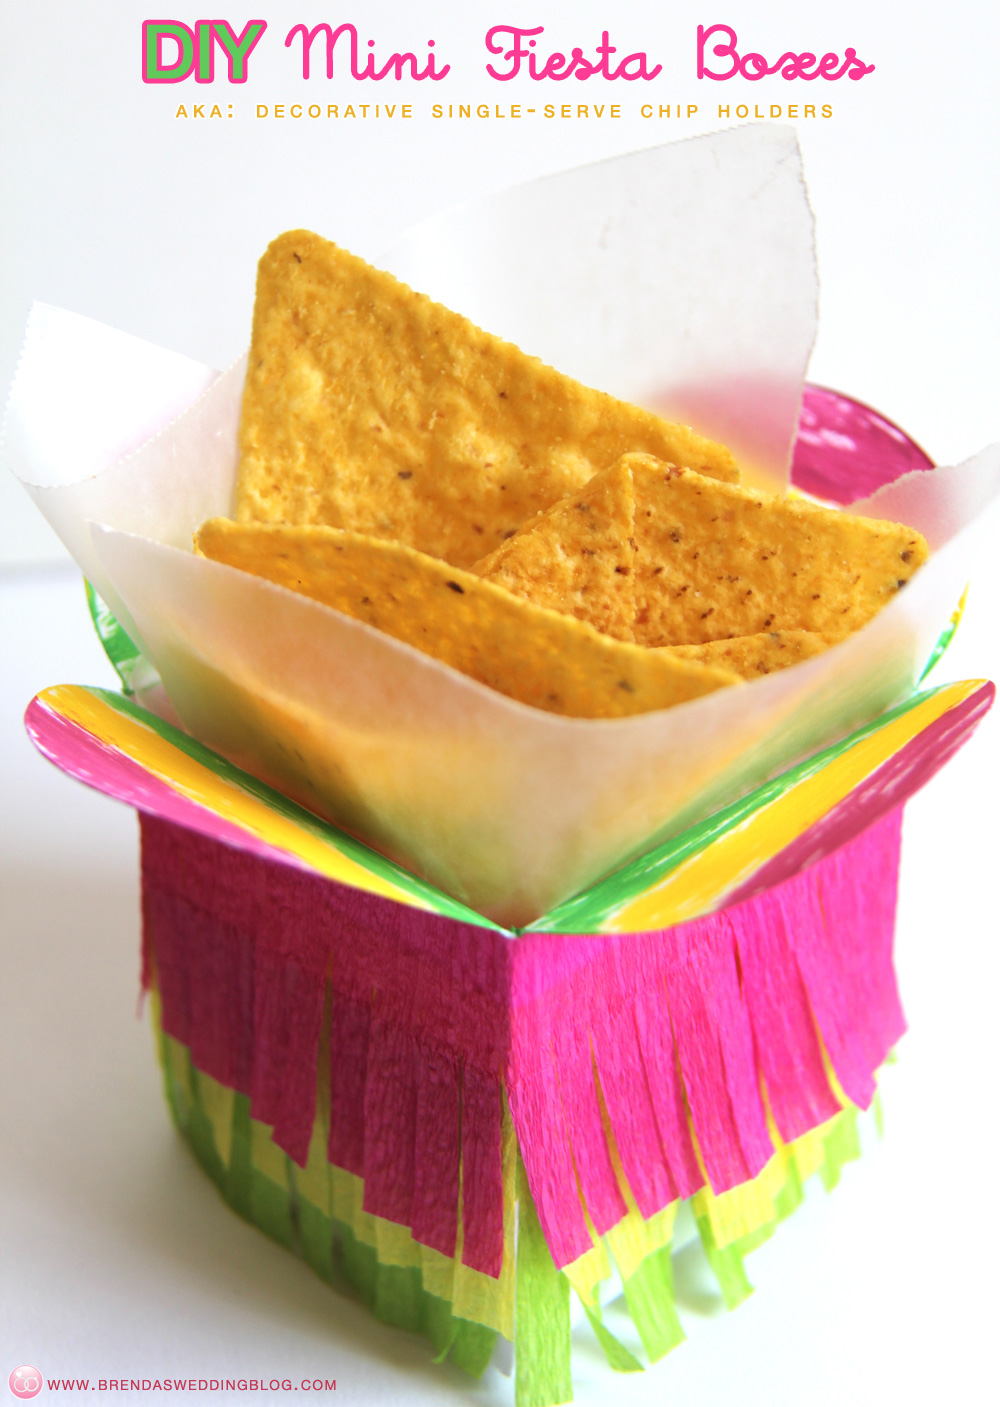 DIY Mini Fiesta Boxes with crepe paper fringe from www.brendasweddingblog.com #cincodemayo #fiestas #tacobars